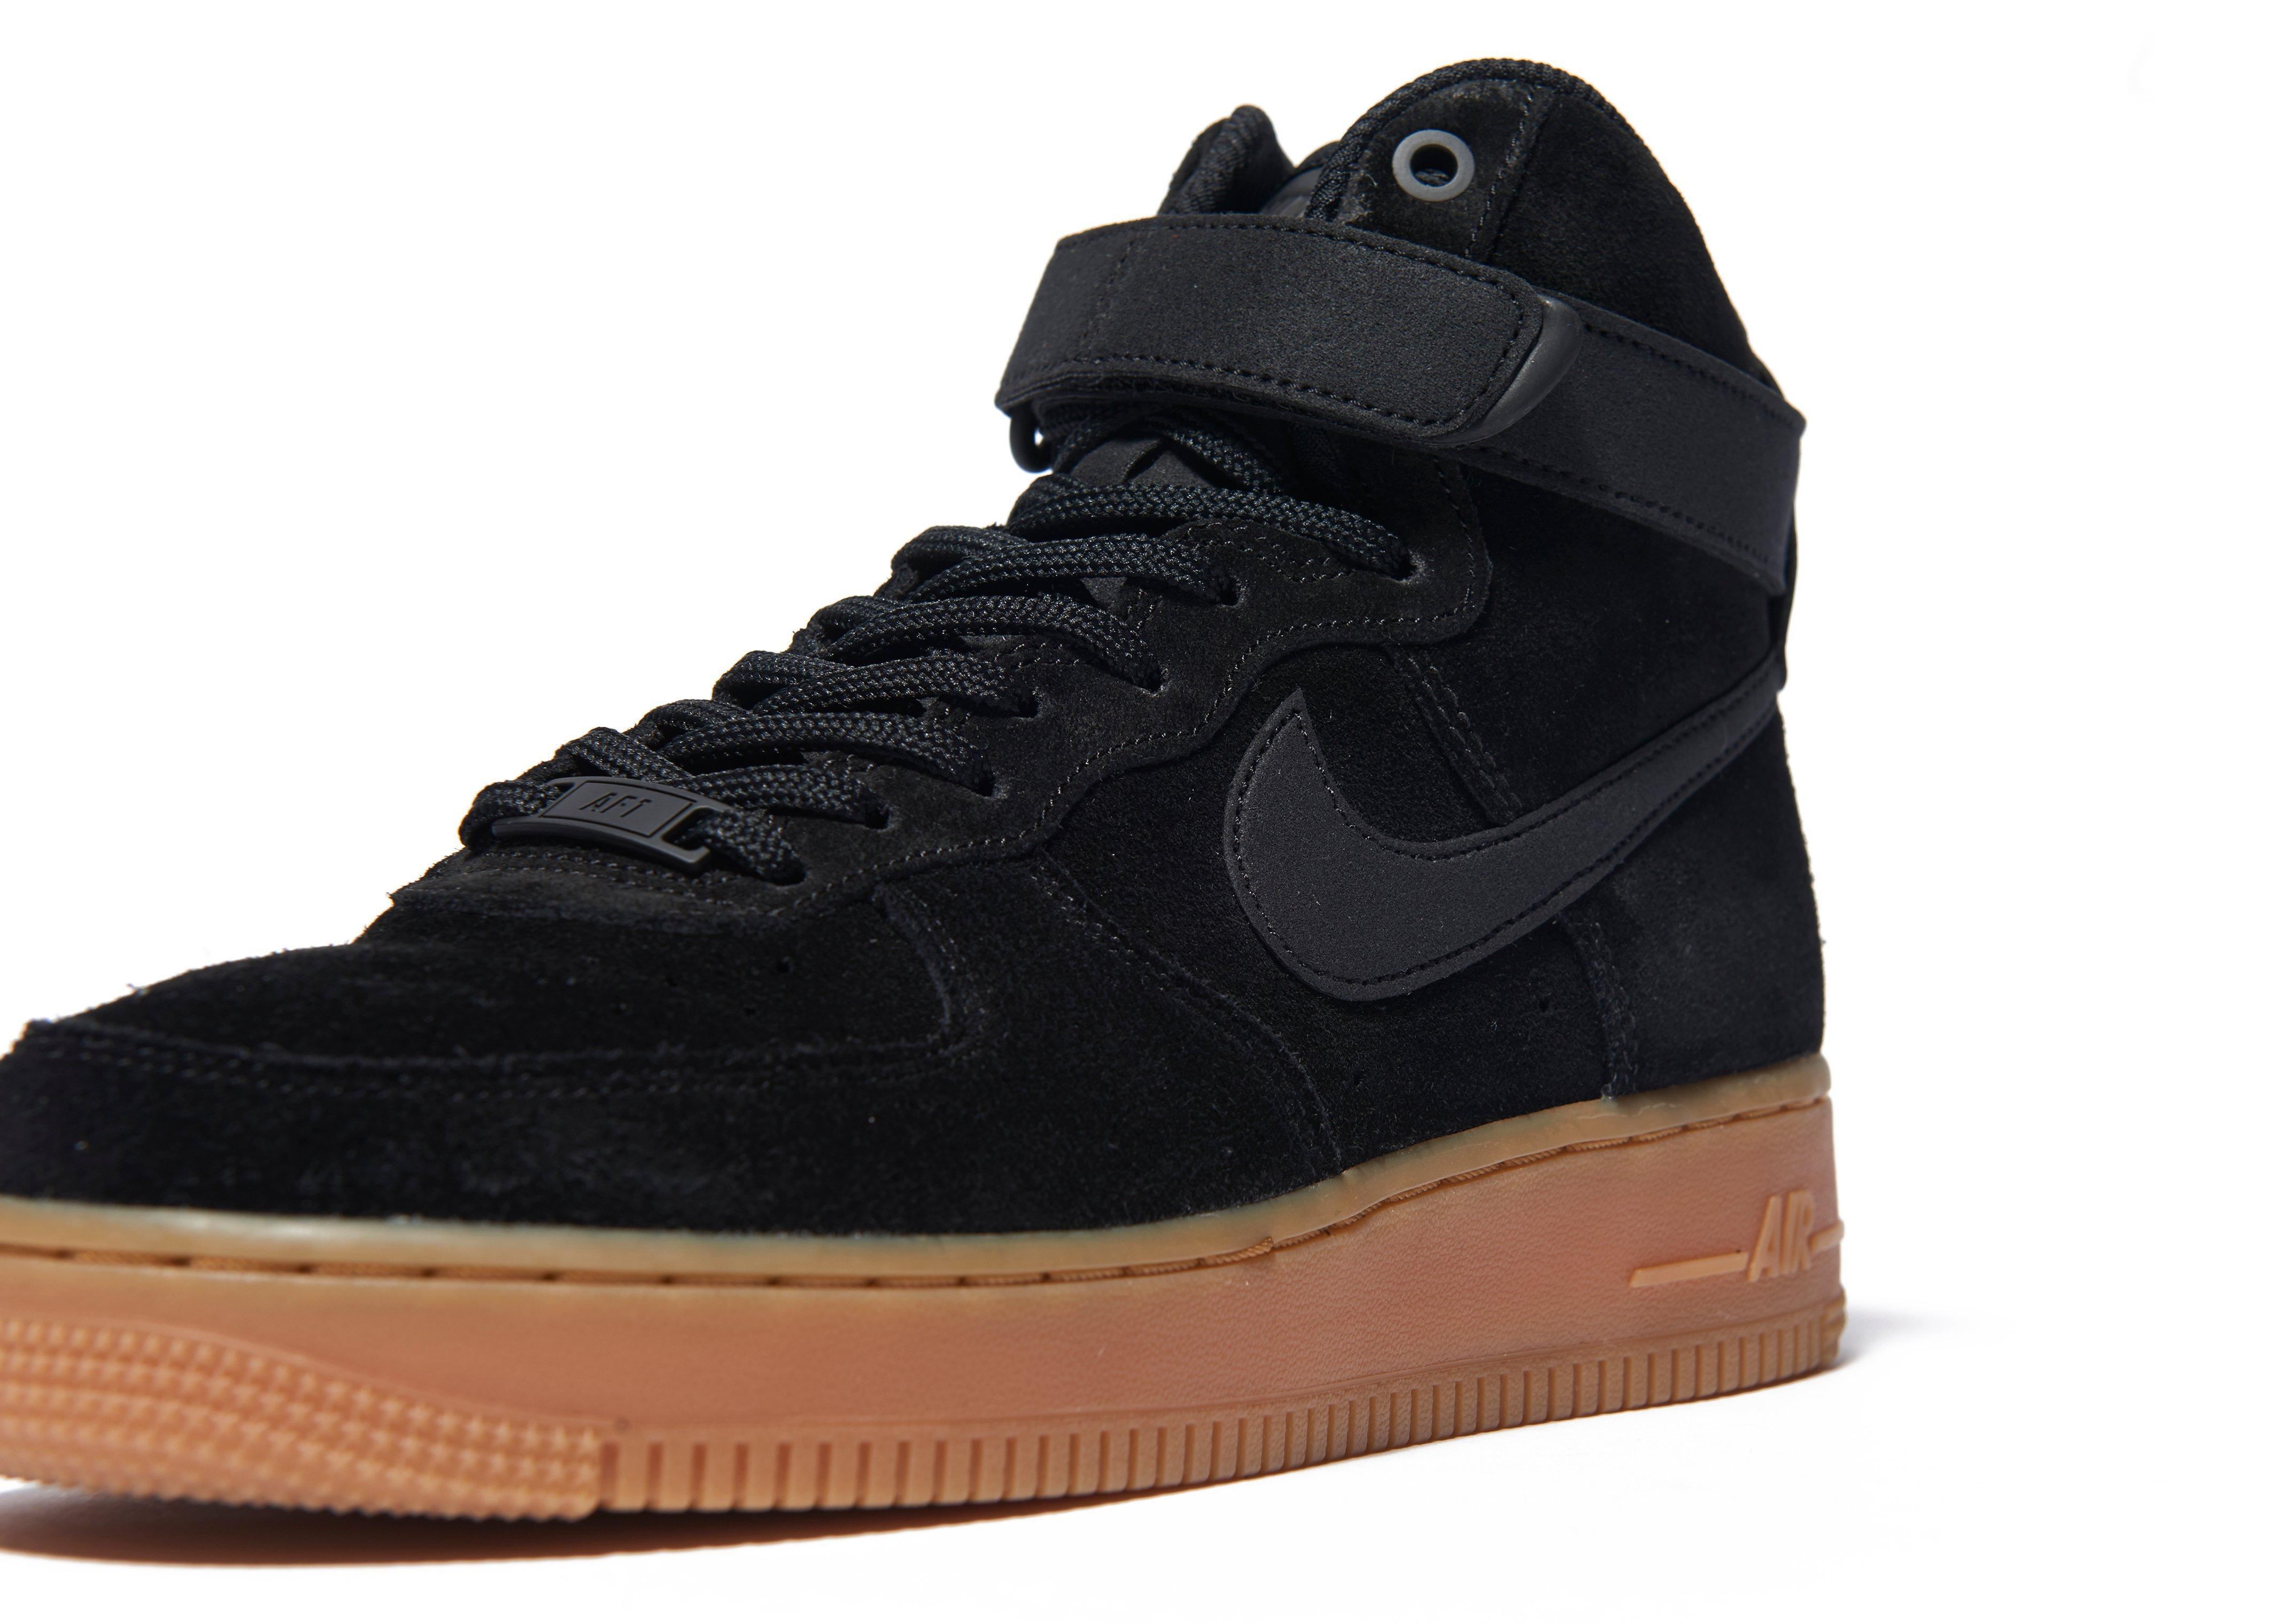 lyst nike air force 1 mid in black. Black Bedroom Furniture Sets. Home Design Ideas